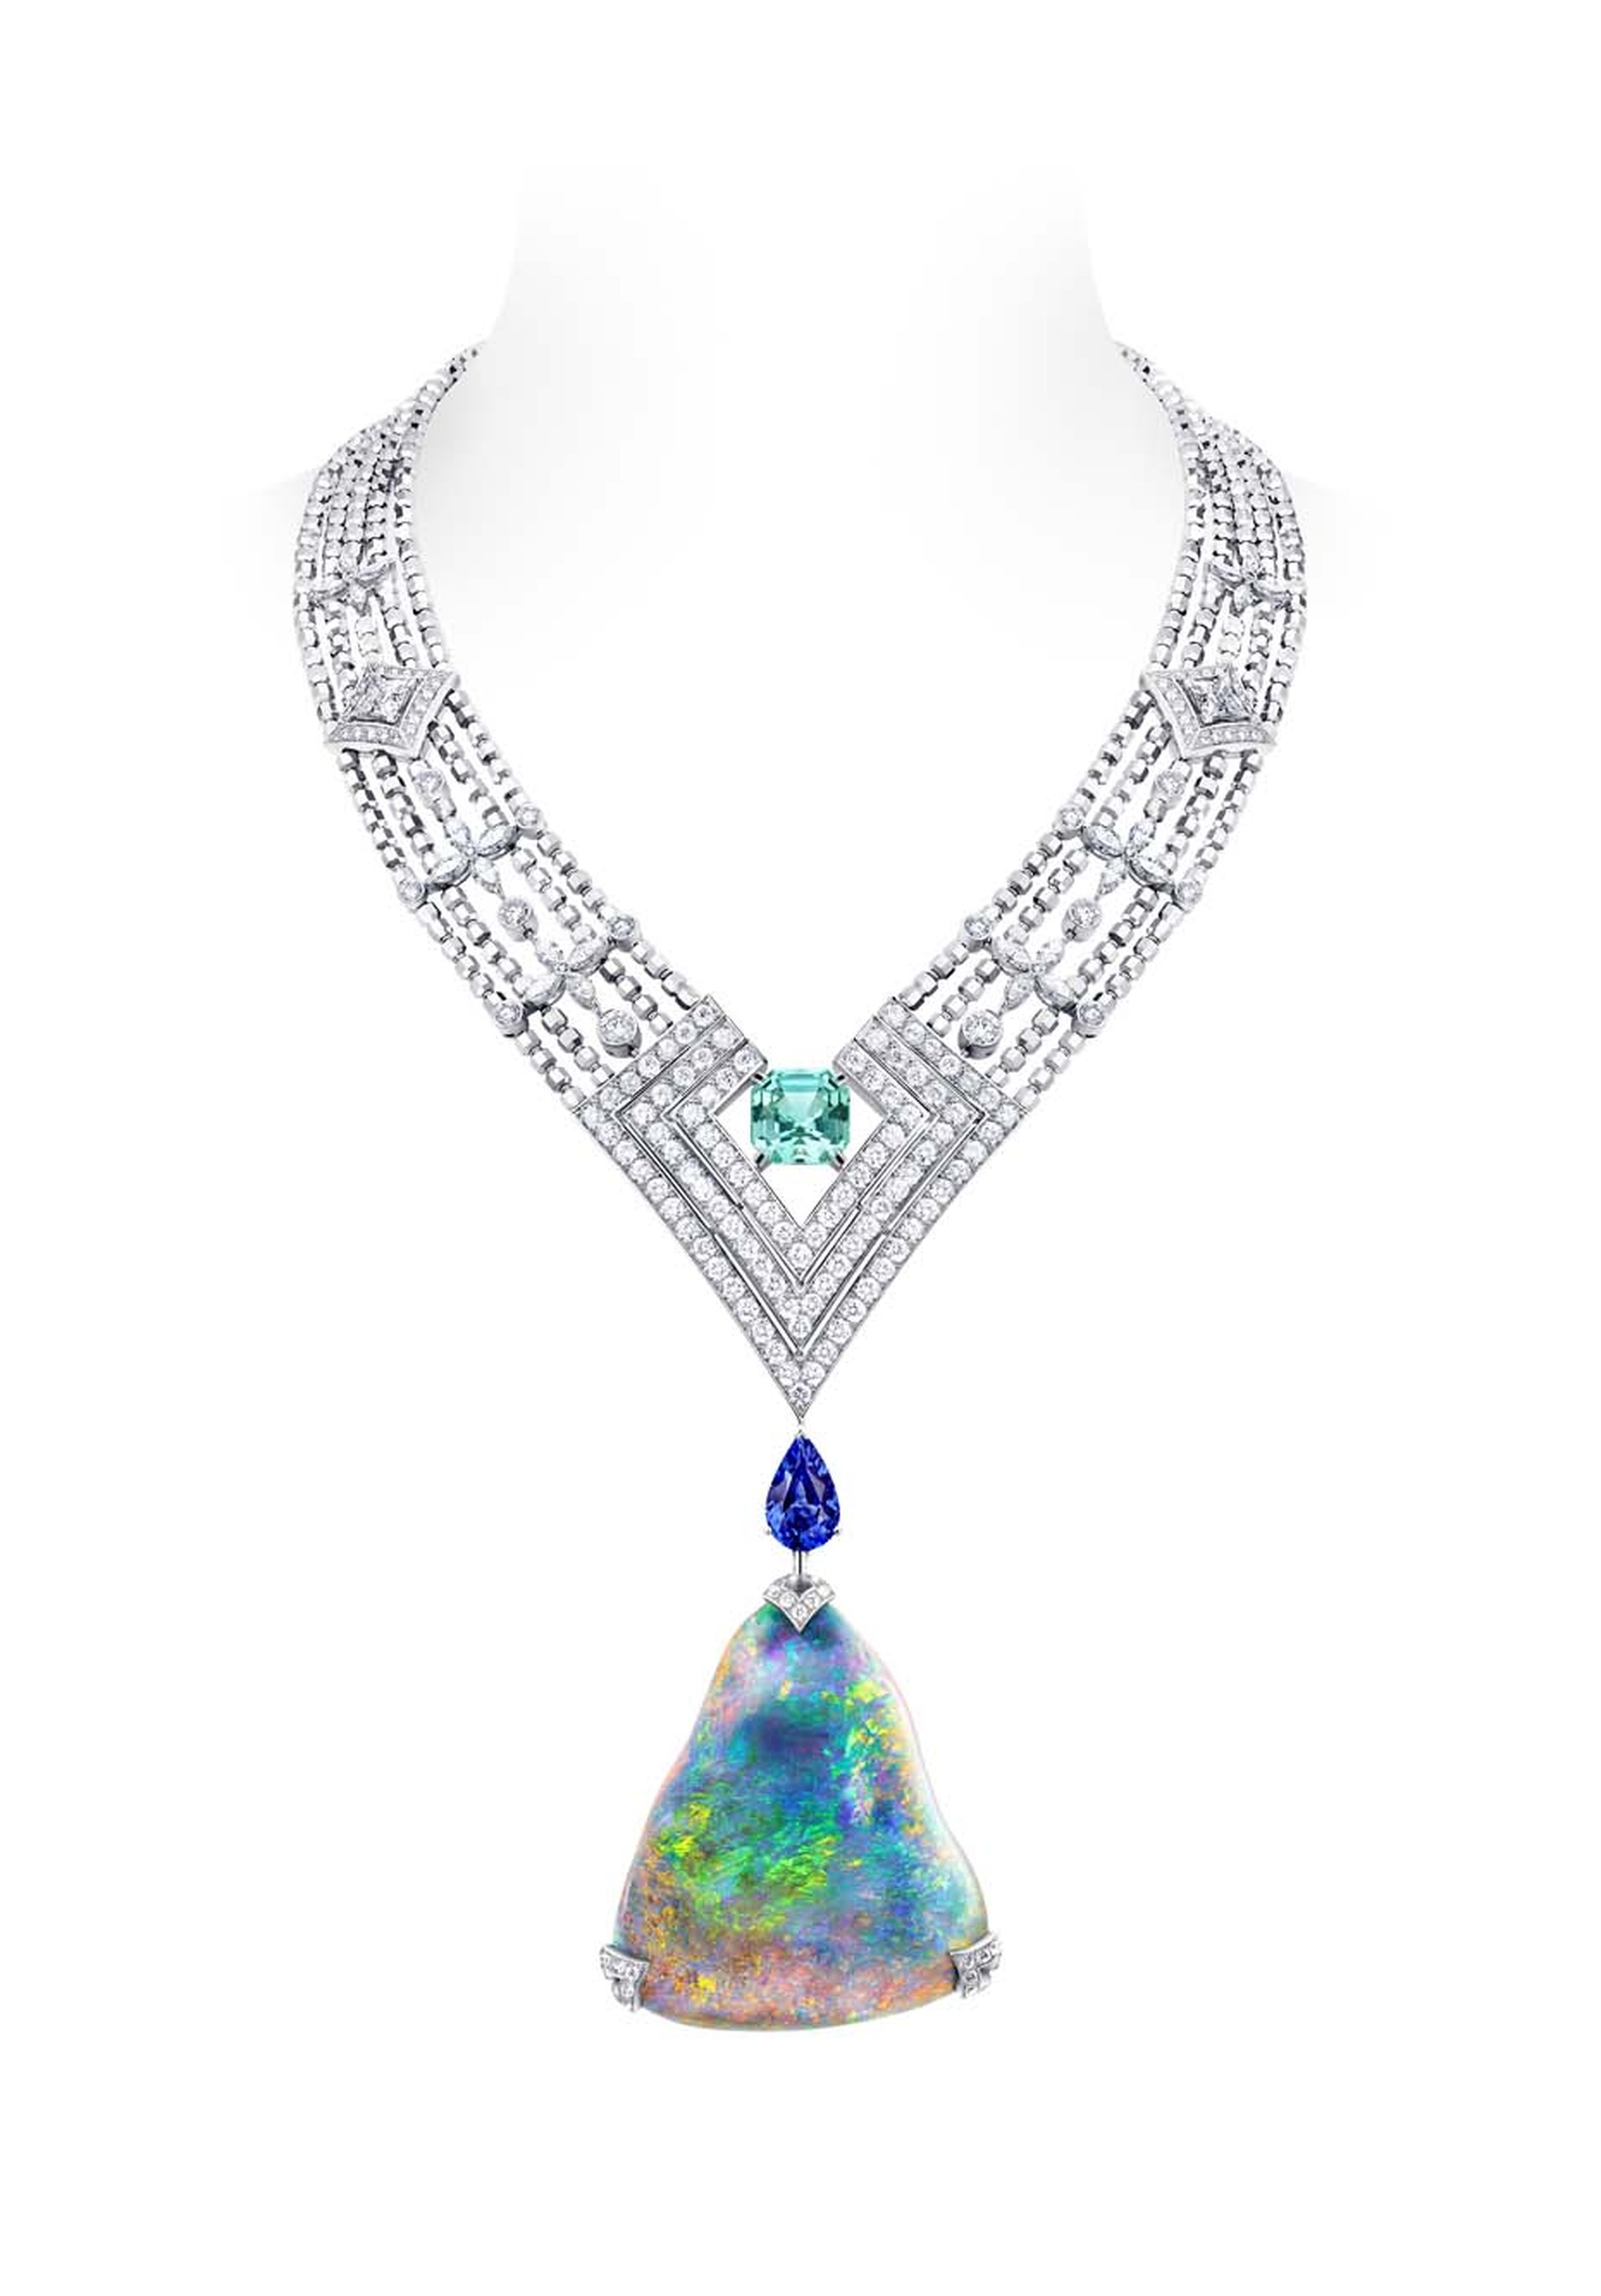 Louis Vuitton Acte V Genesis necklace featuring a 87.92ct Australian black opal and Vuitton's signature star-cut diamonds.